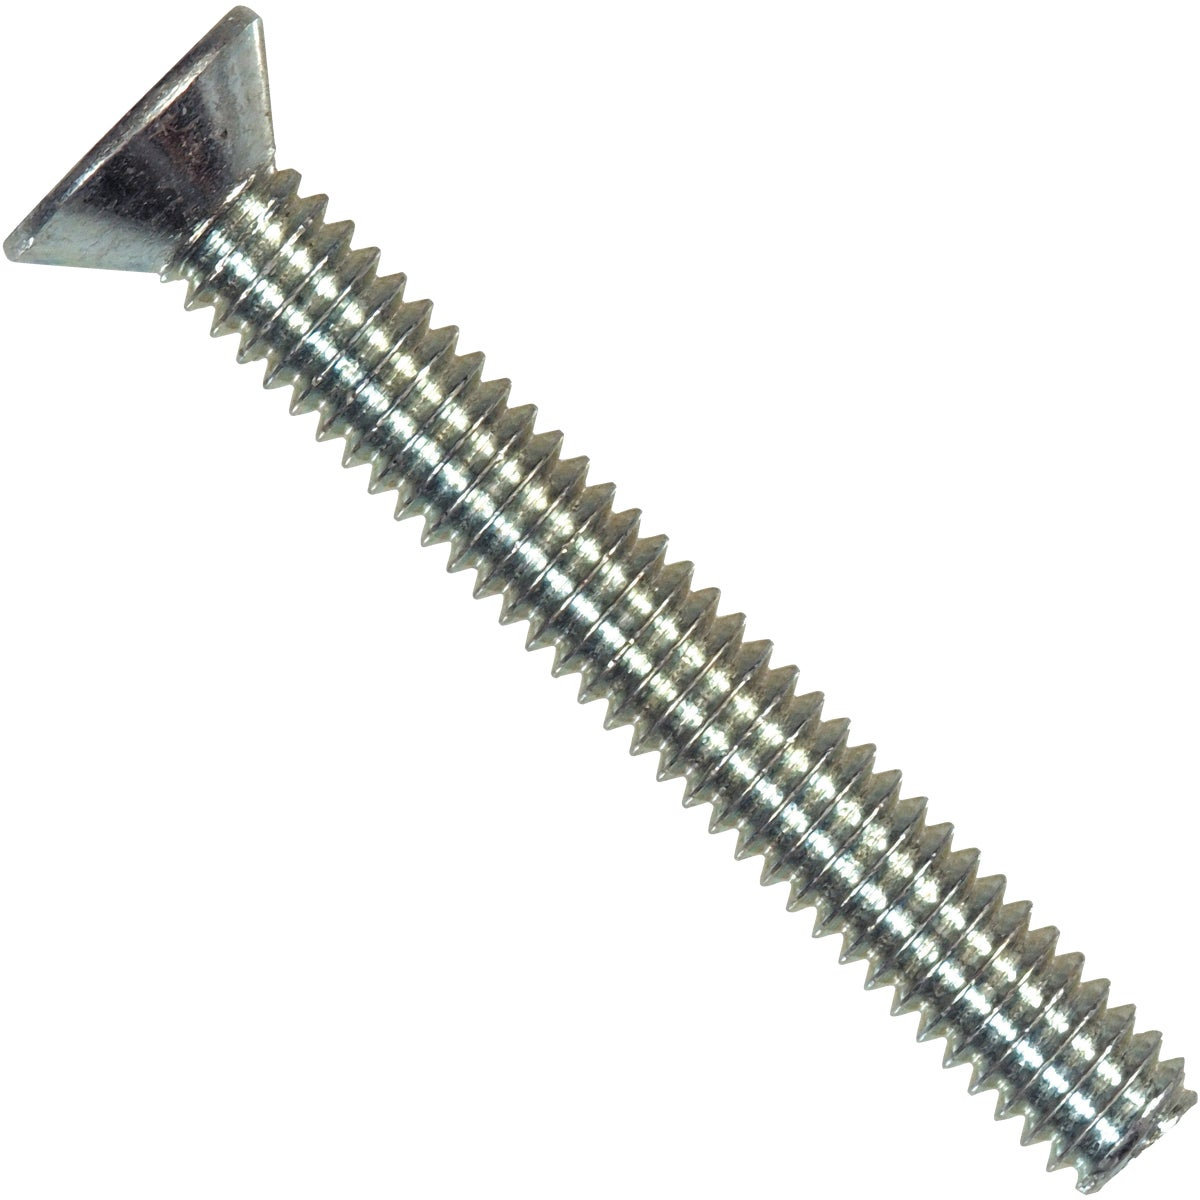 1/4-20X1-1/4 MACH SCREW - 101140 by Hillman Fastener